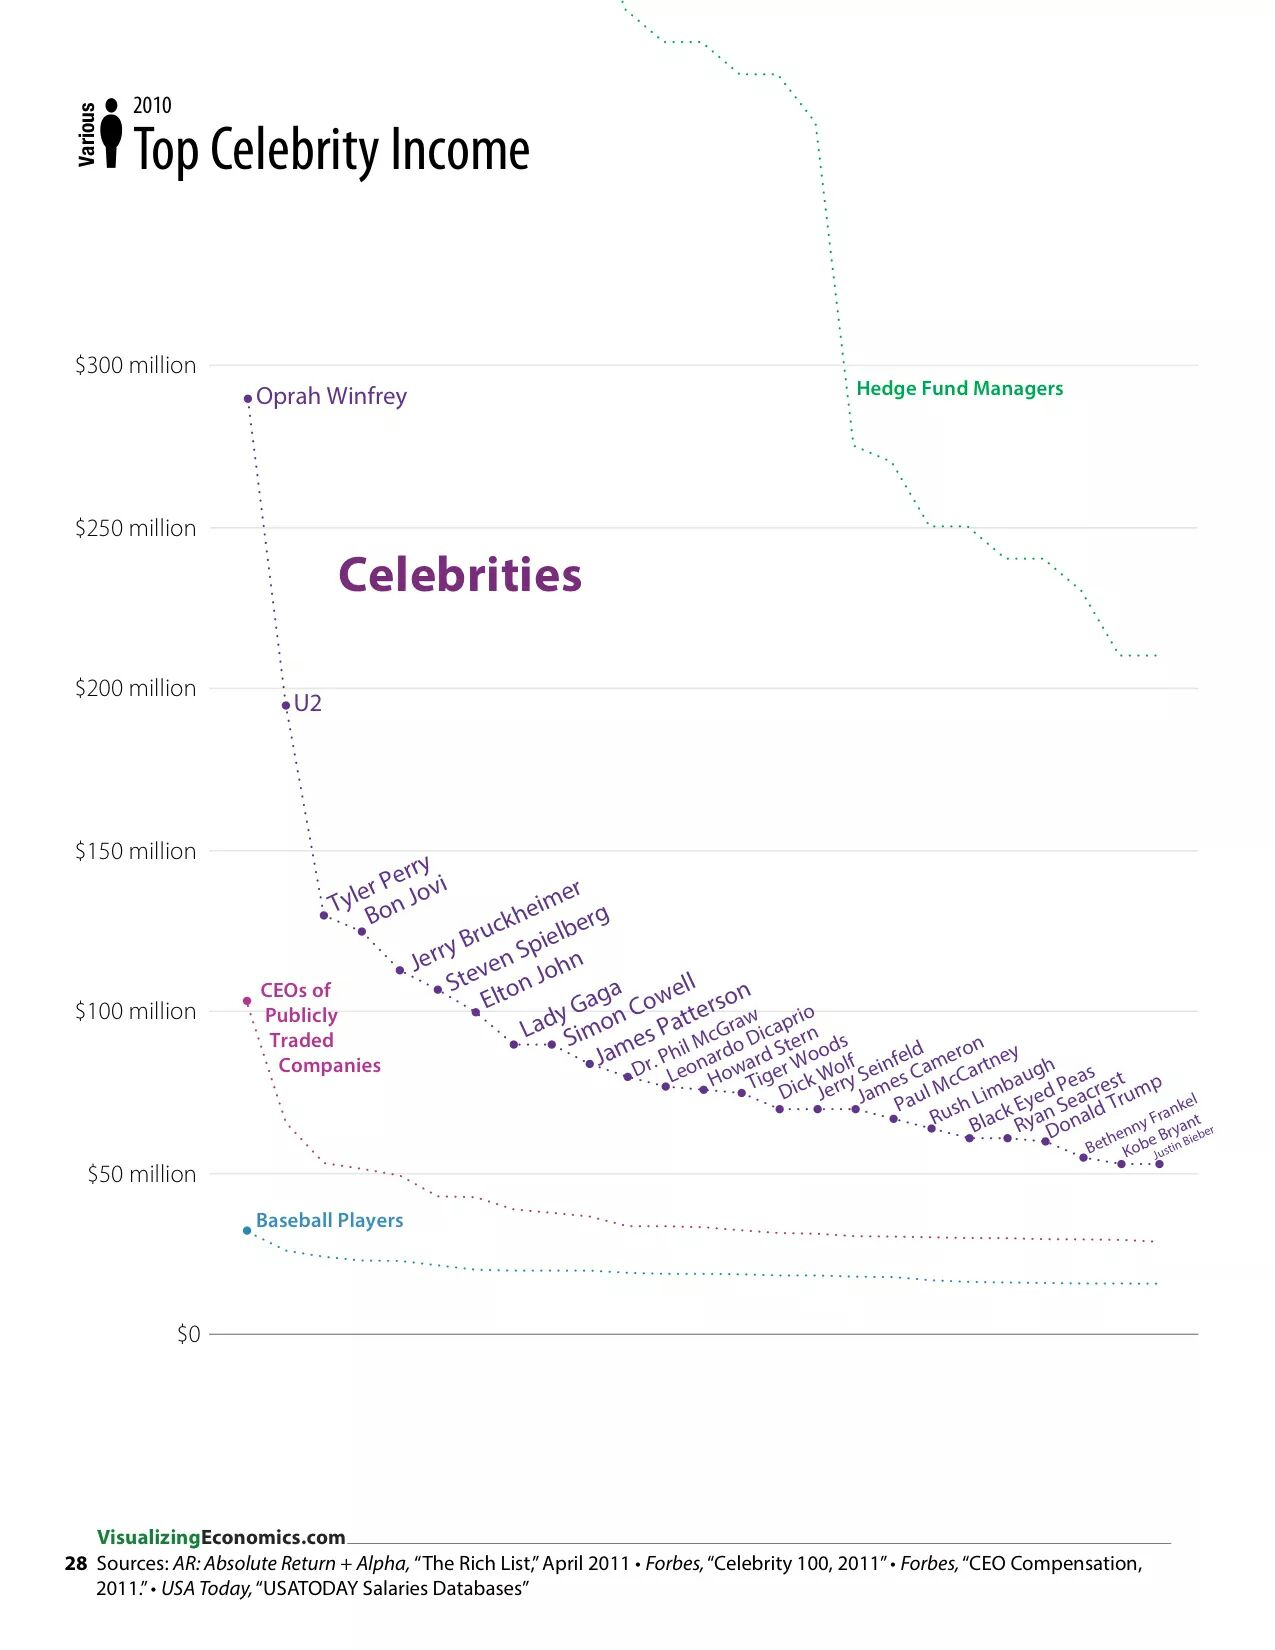 Why do celebrities get a pass on their pay compared to CEOs?